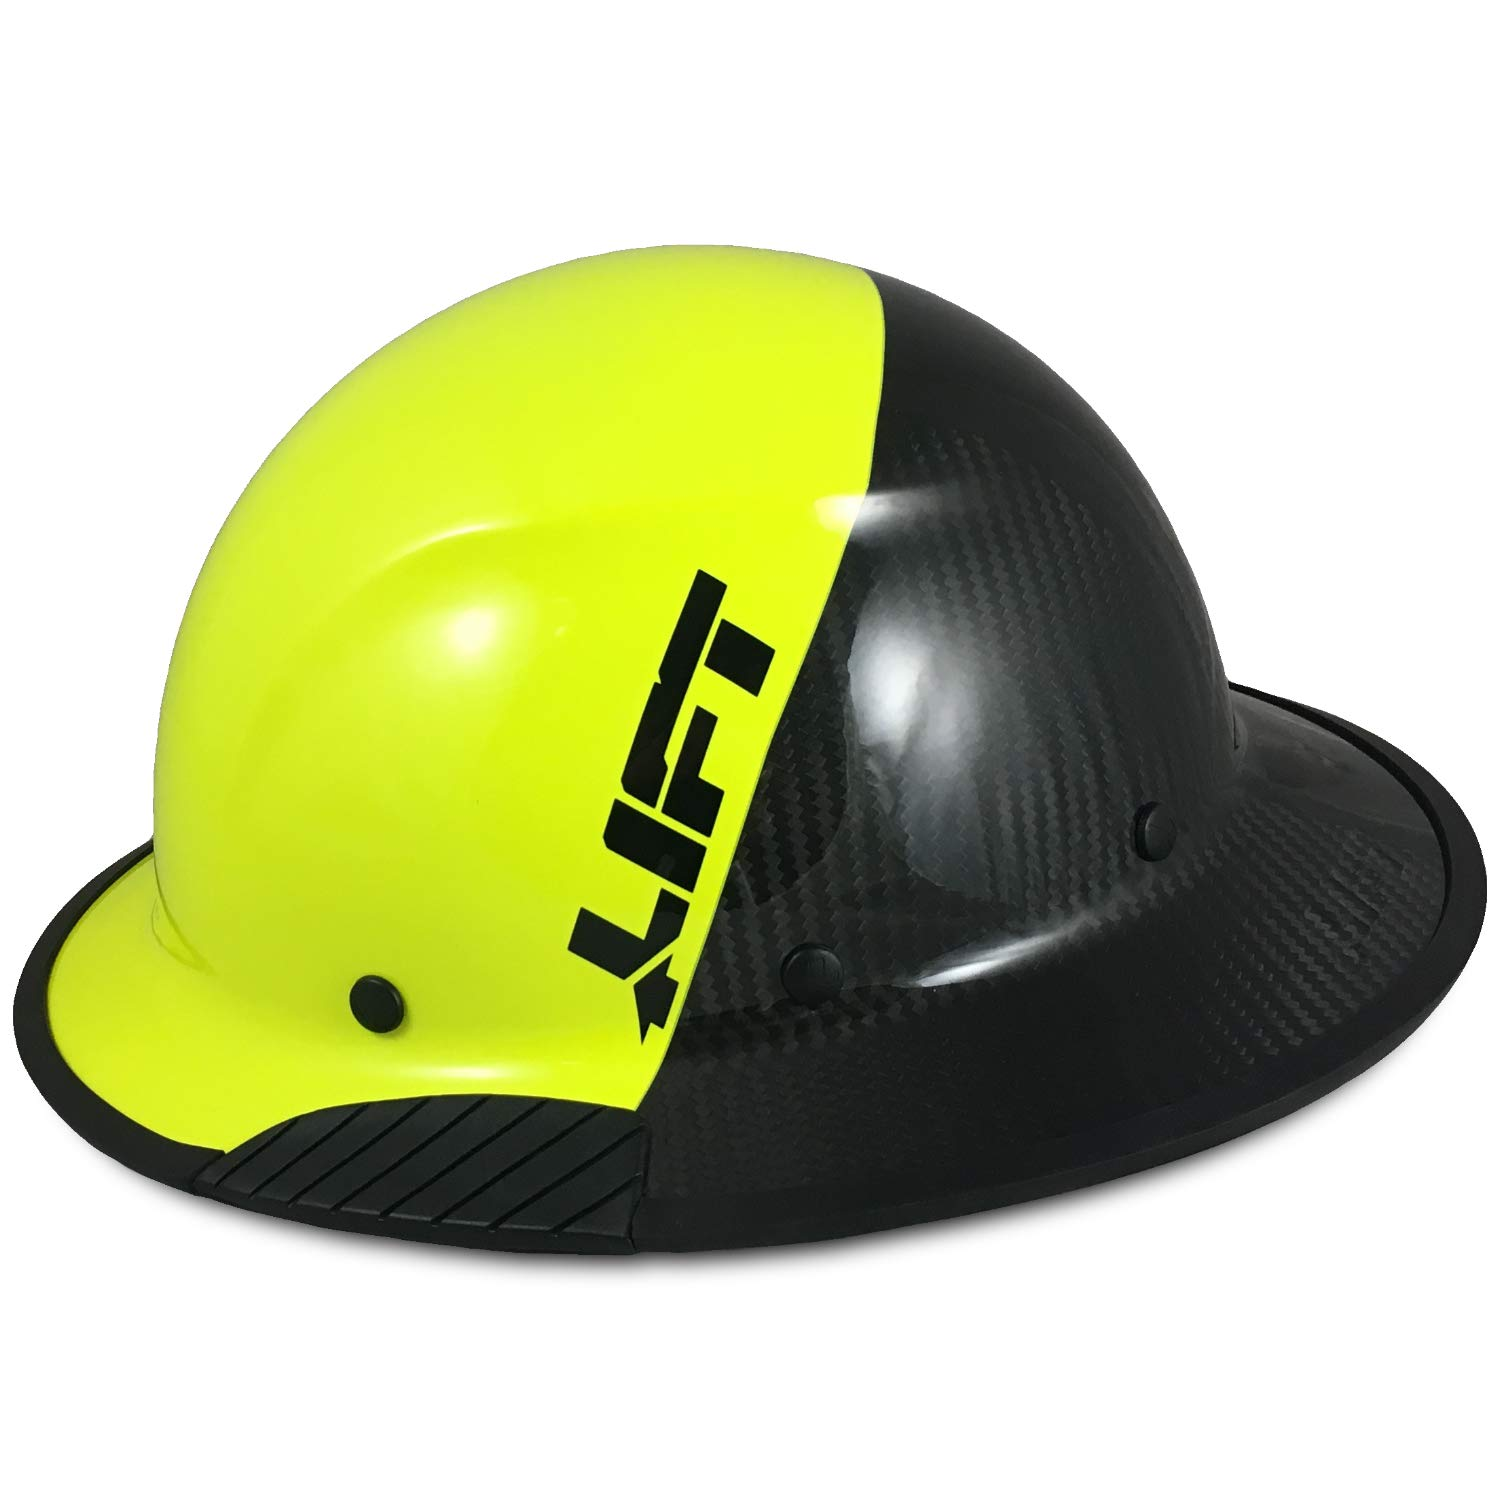 Texas America Safety Company Actual Carbon Fiber Material Hard Hat with Hard Hat Tote- Full Brim, Hi-Viz Lime and Black and Protective Edging